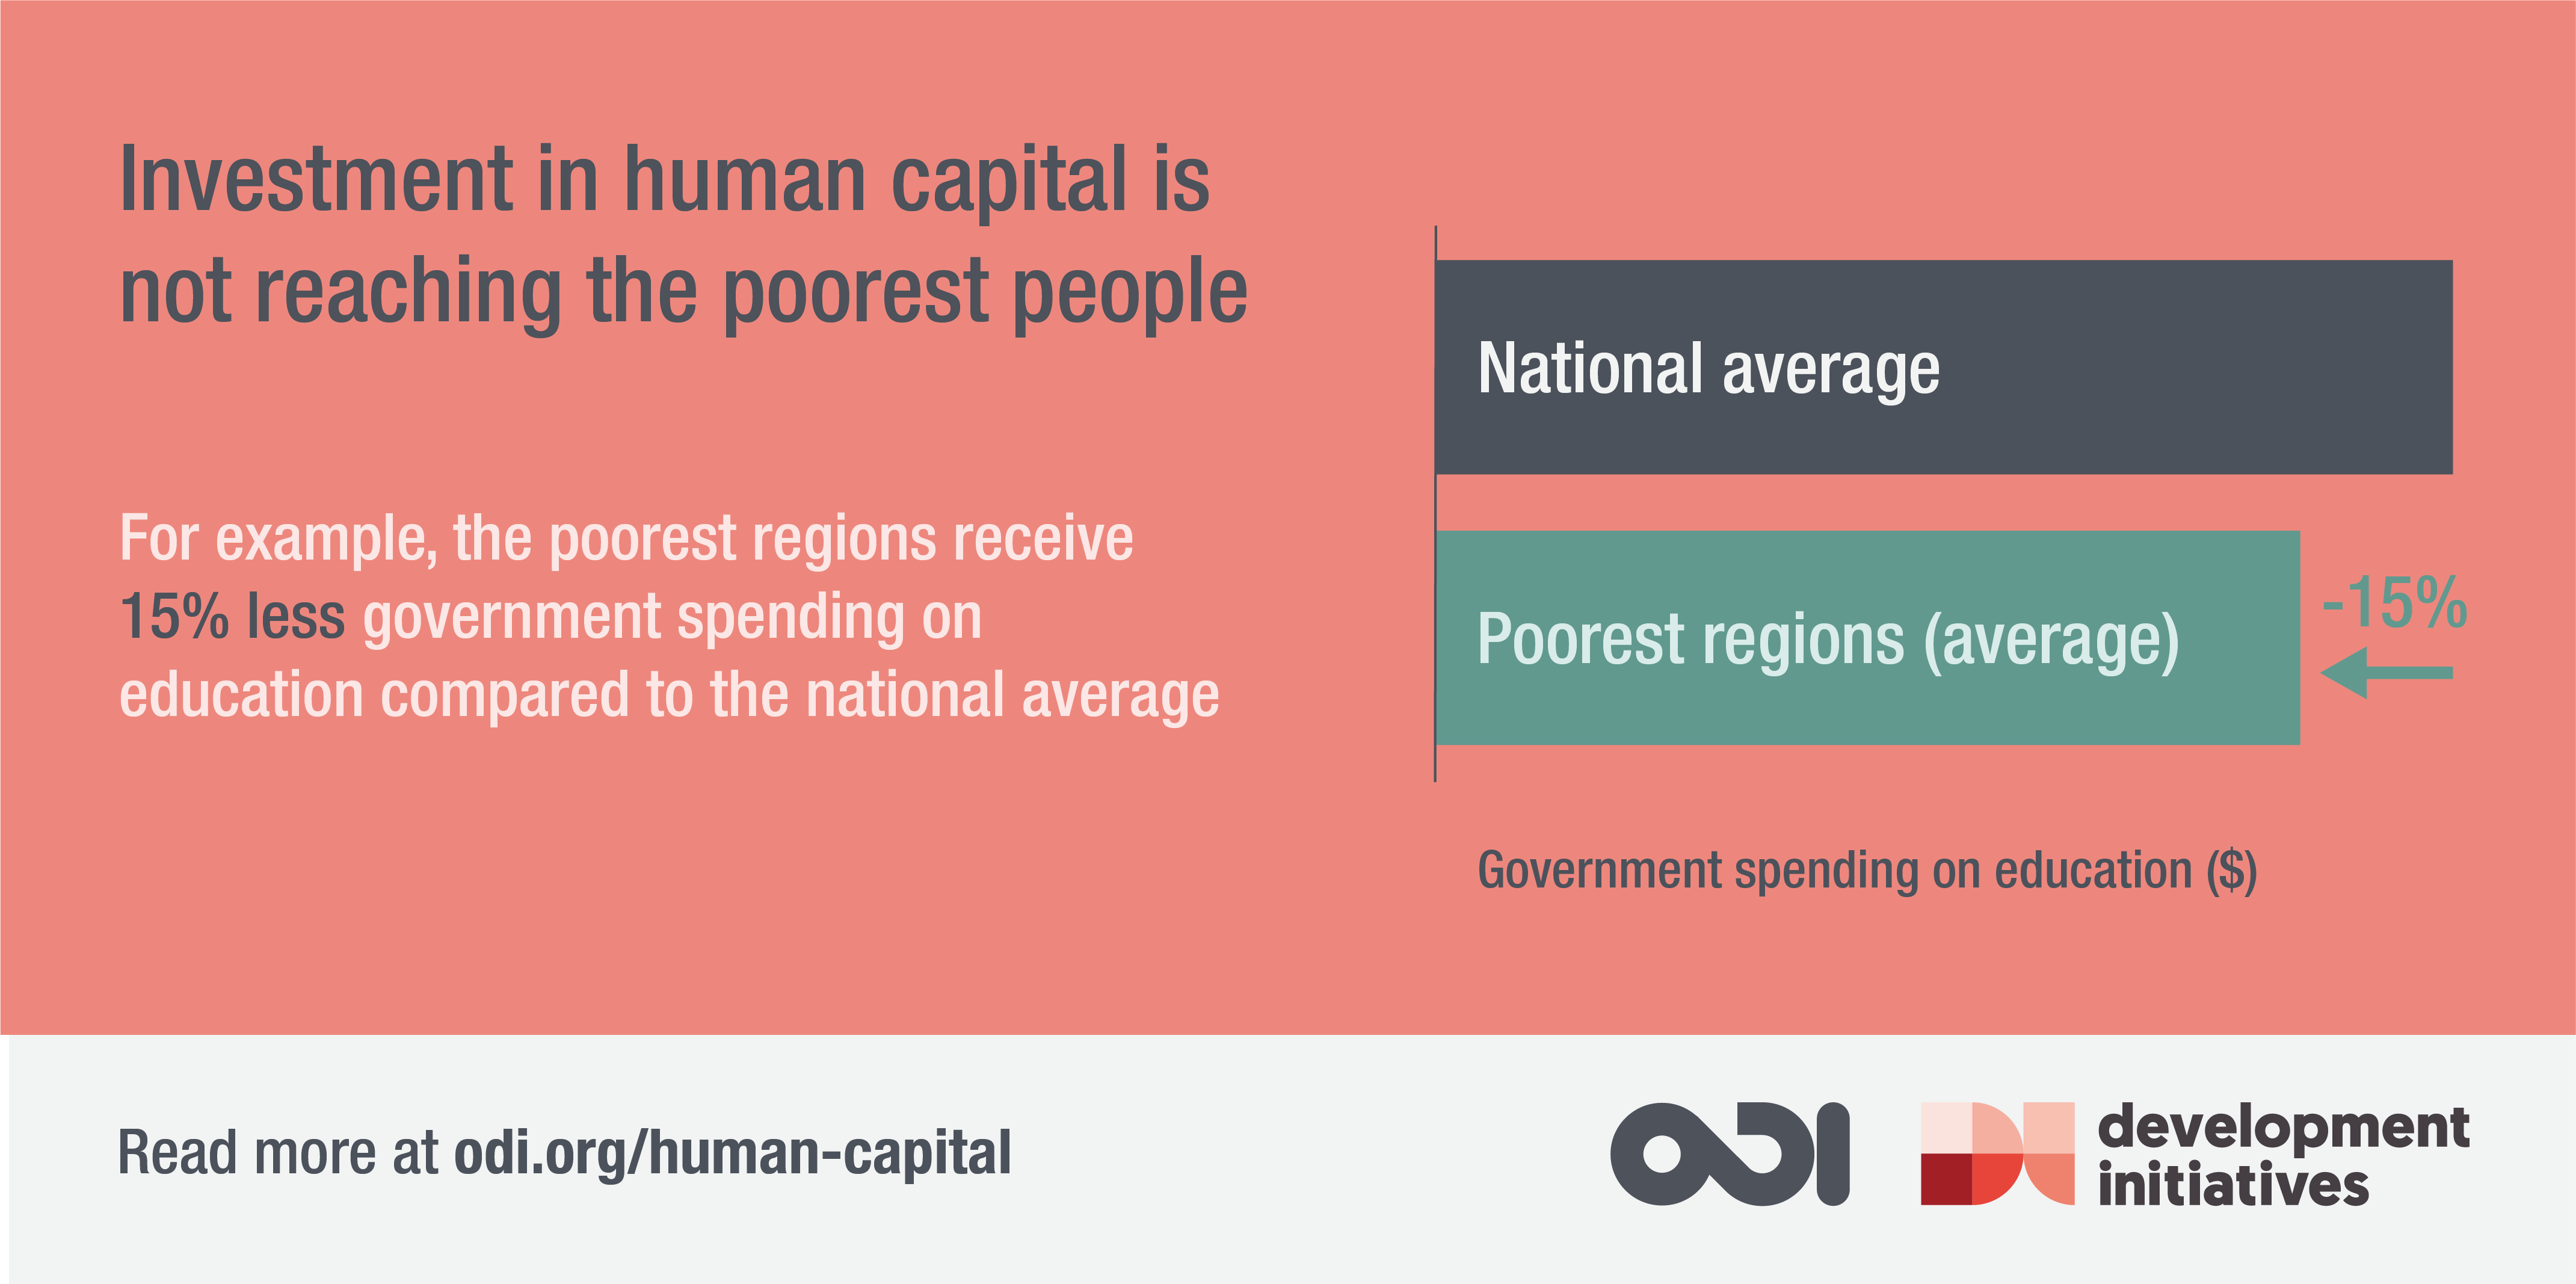 The poorest regions receive 15% less government spending on education compared to the national average